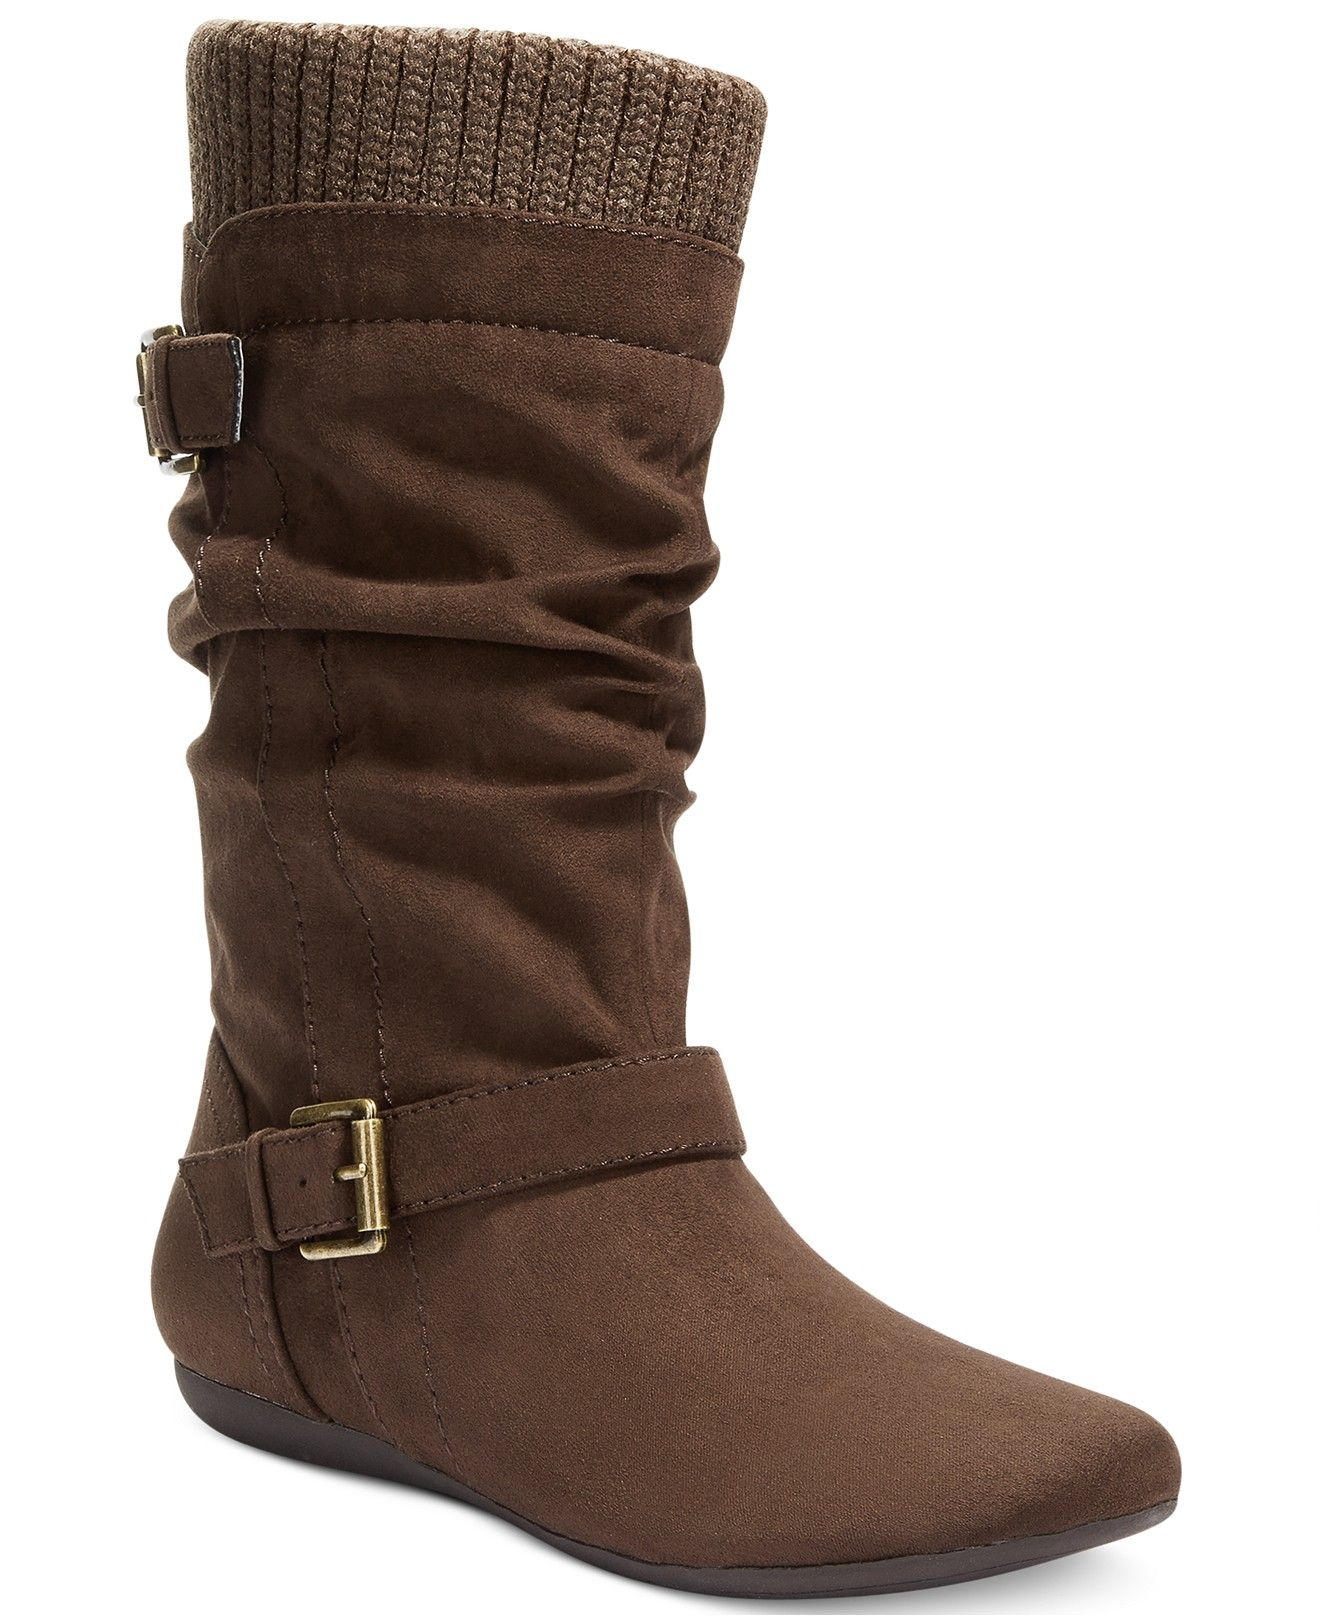 20c5e604ab648 Report Everton Slouchy Sweater Boots - Boots - Shoes - Macy s ...